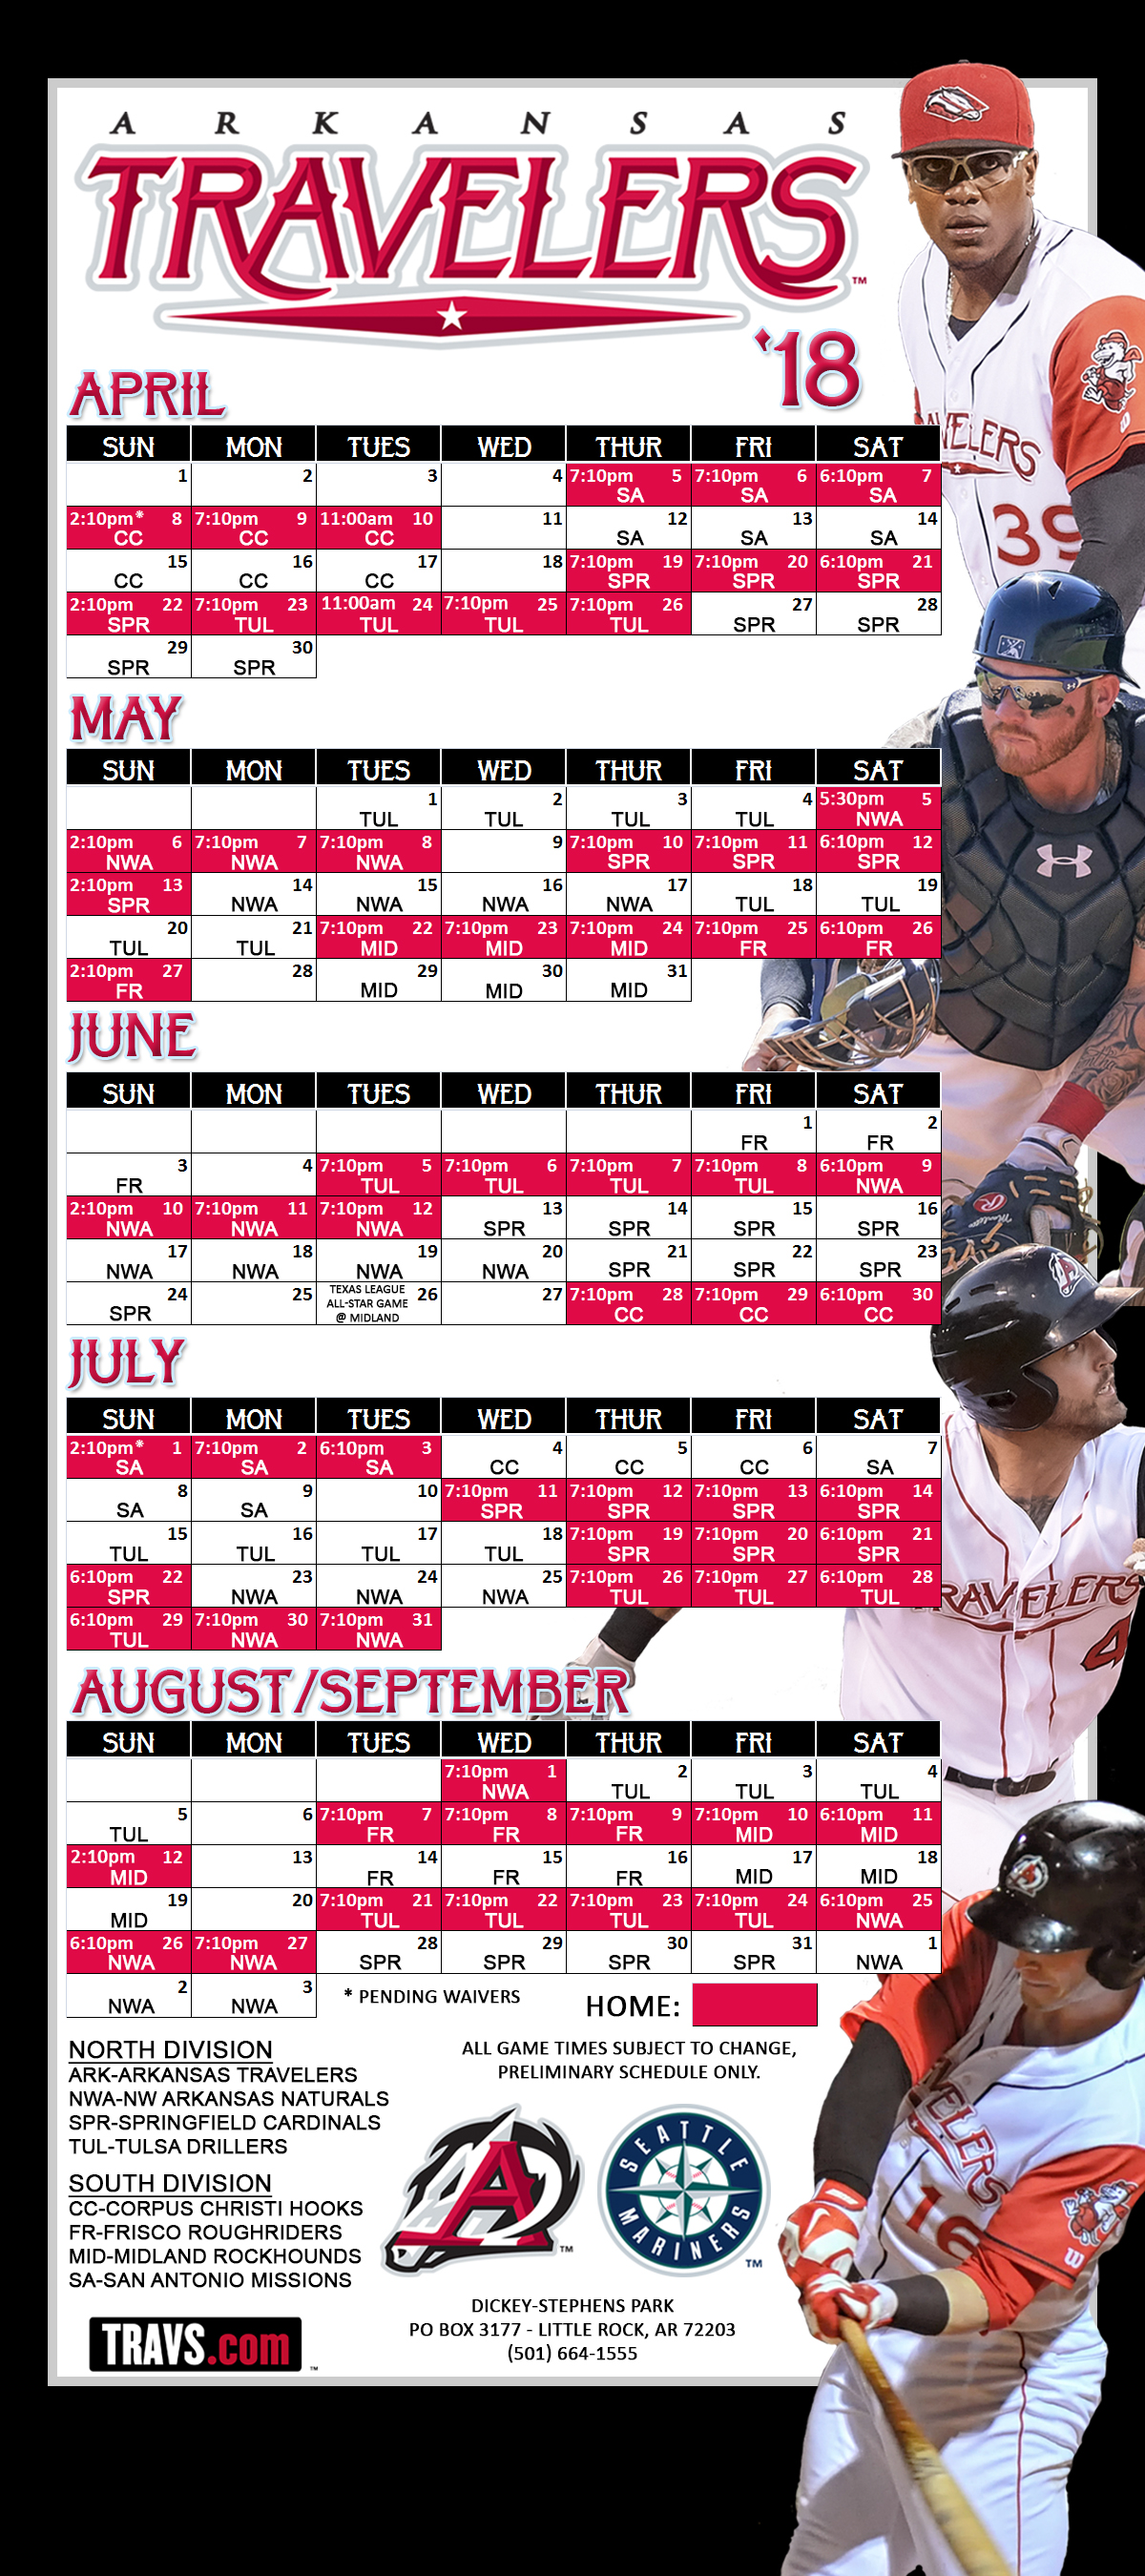 Arkansas Travelers Game-by-game Results | Arkansas Travelers